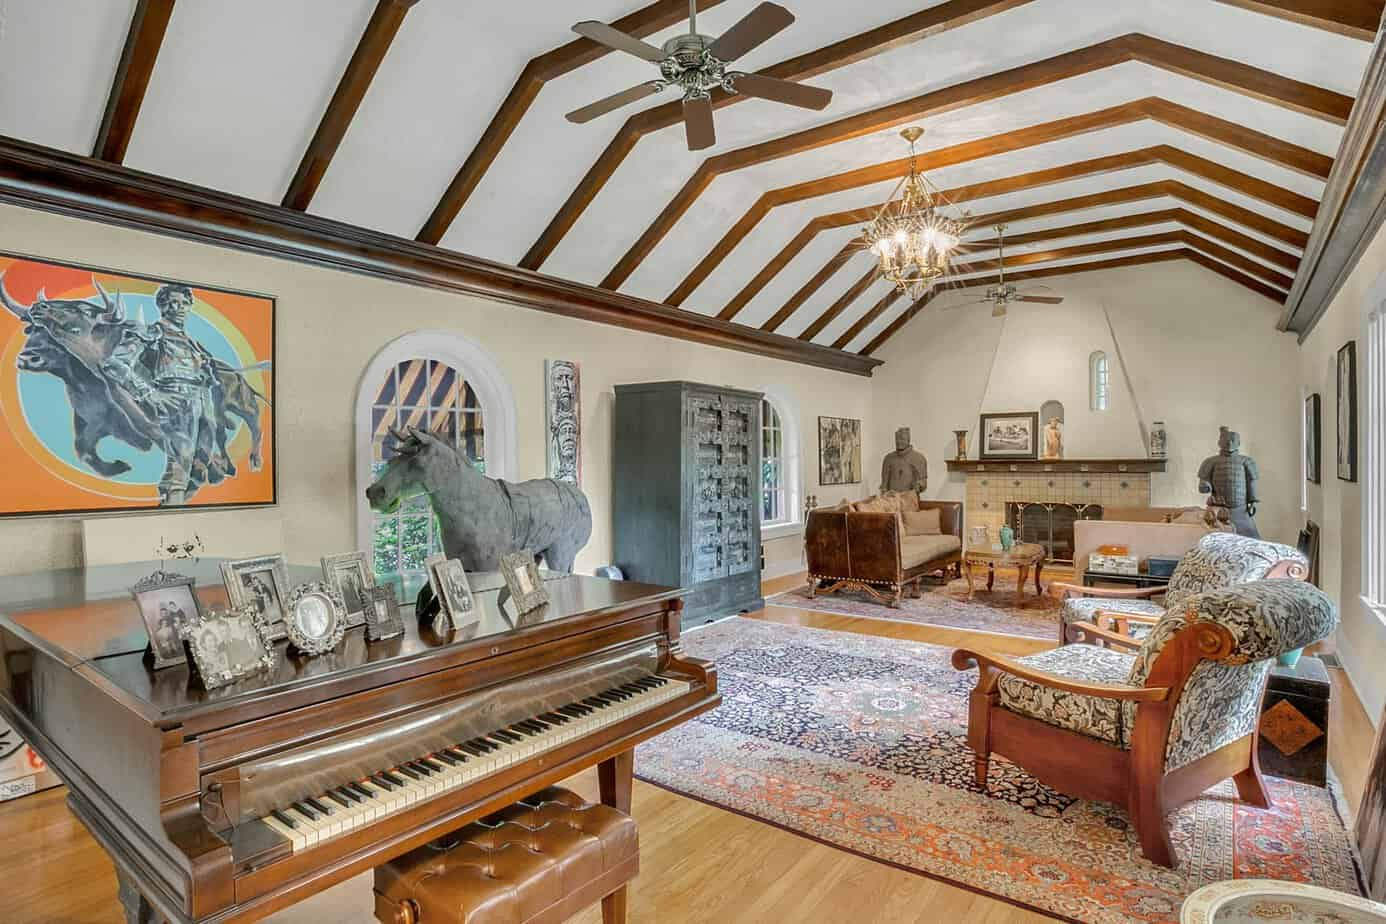 Picture of a grand room measuring 35x20 beamed with two chairs, red and blue rugs, two sofas, decorative spanish fireplace, and arched windows in the home for sale at 4024 W Bay to Bay Tampa FL 33629